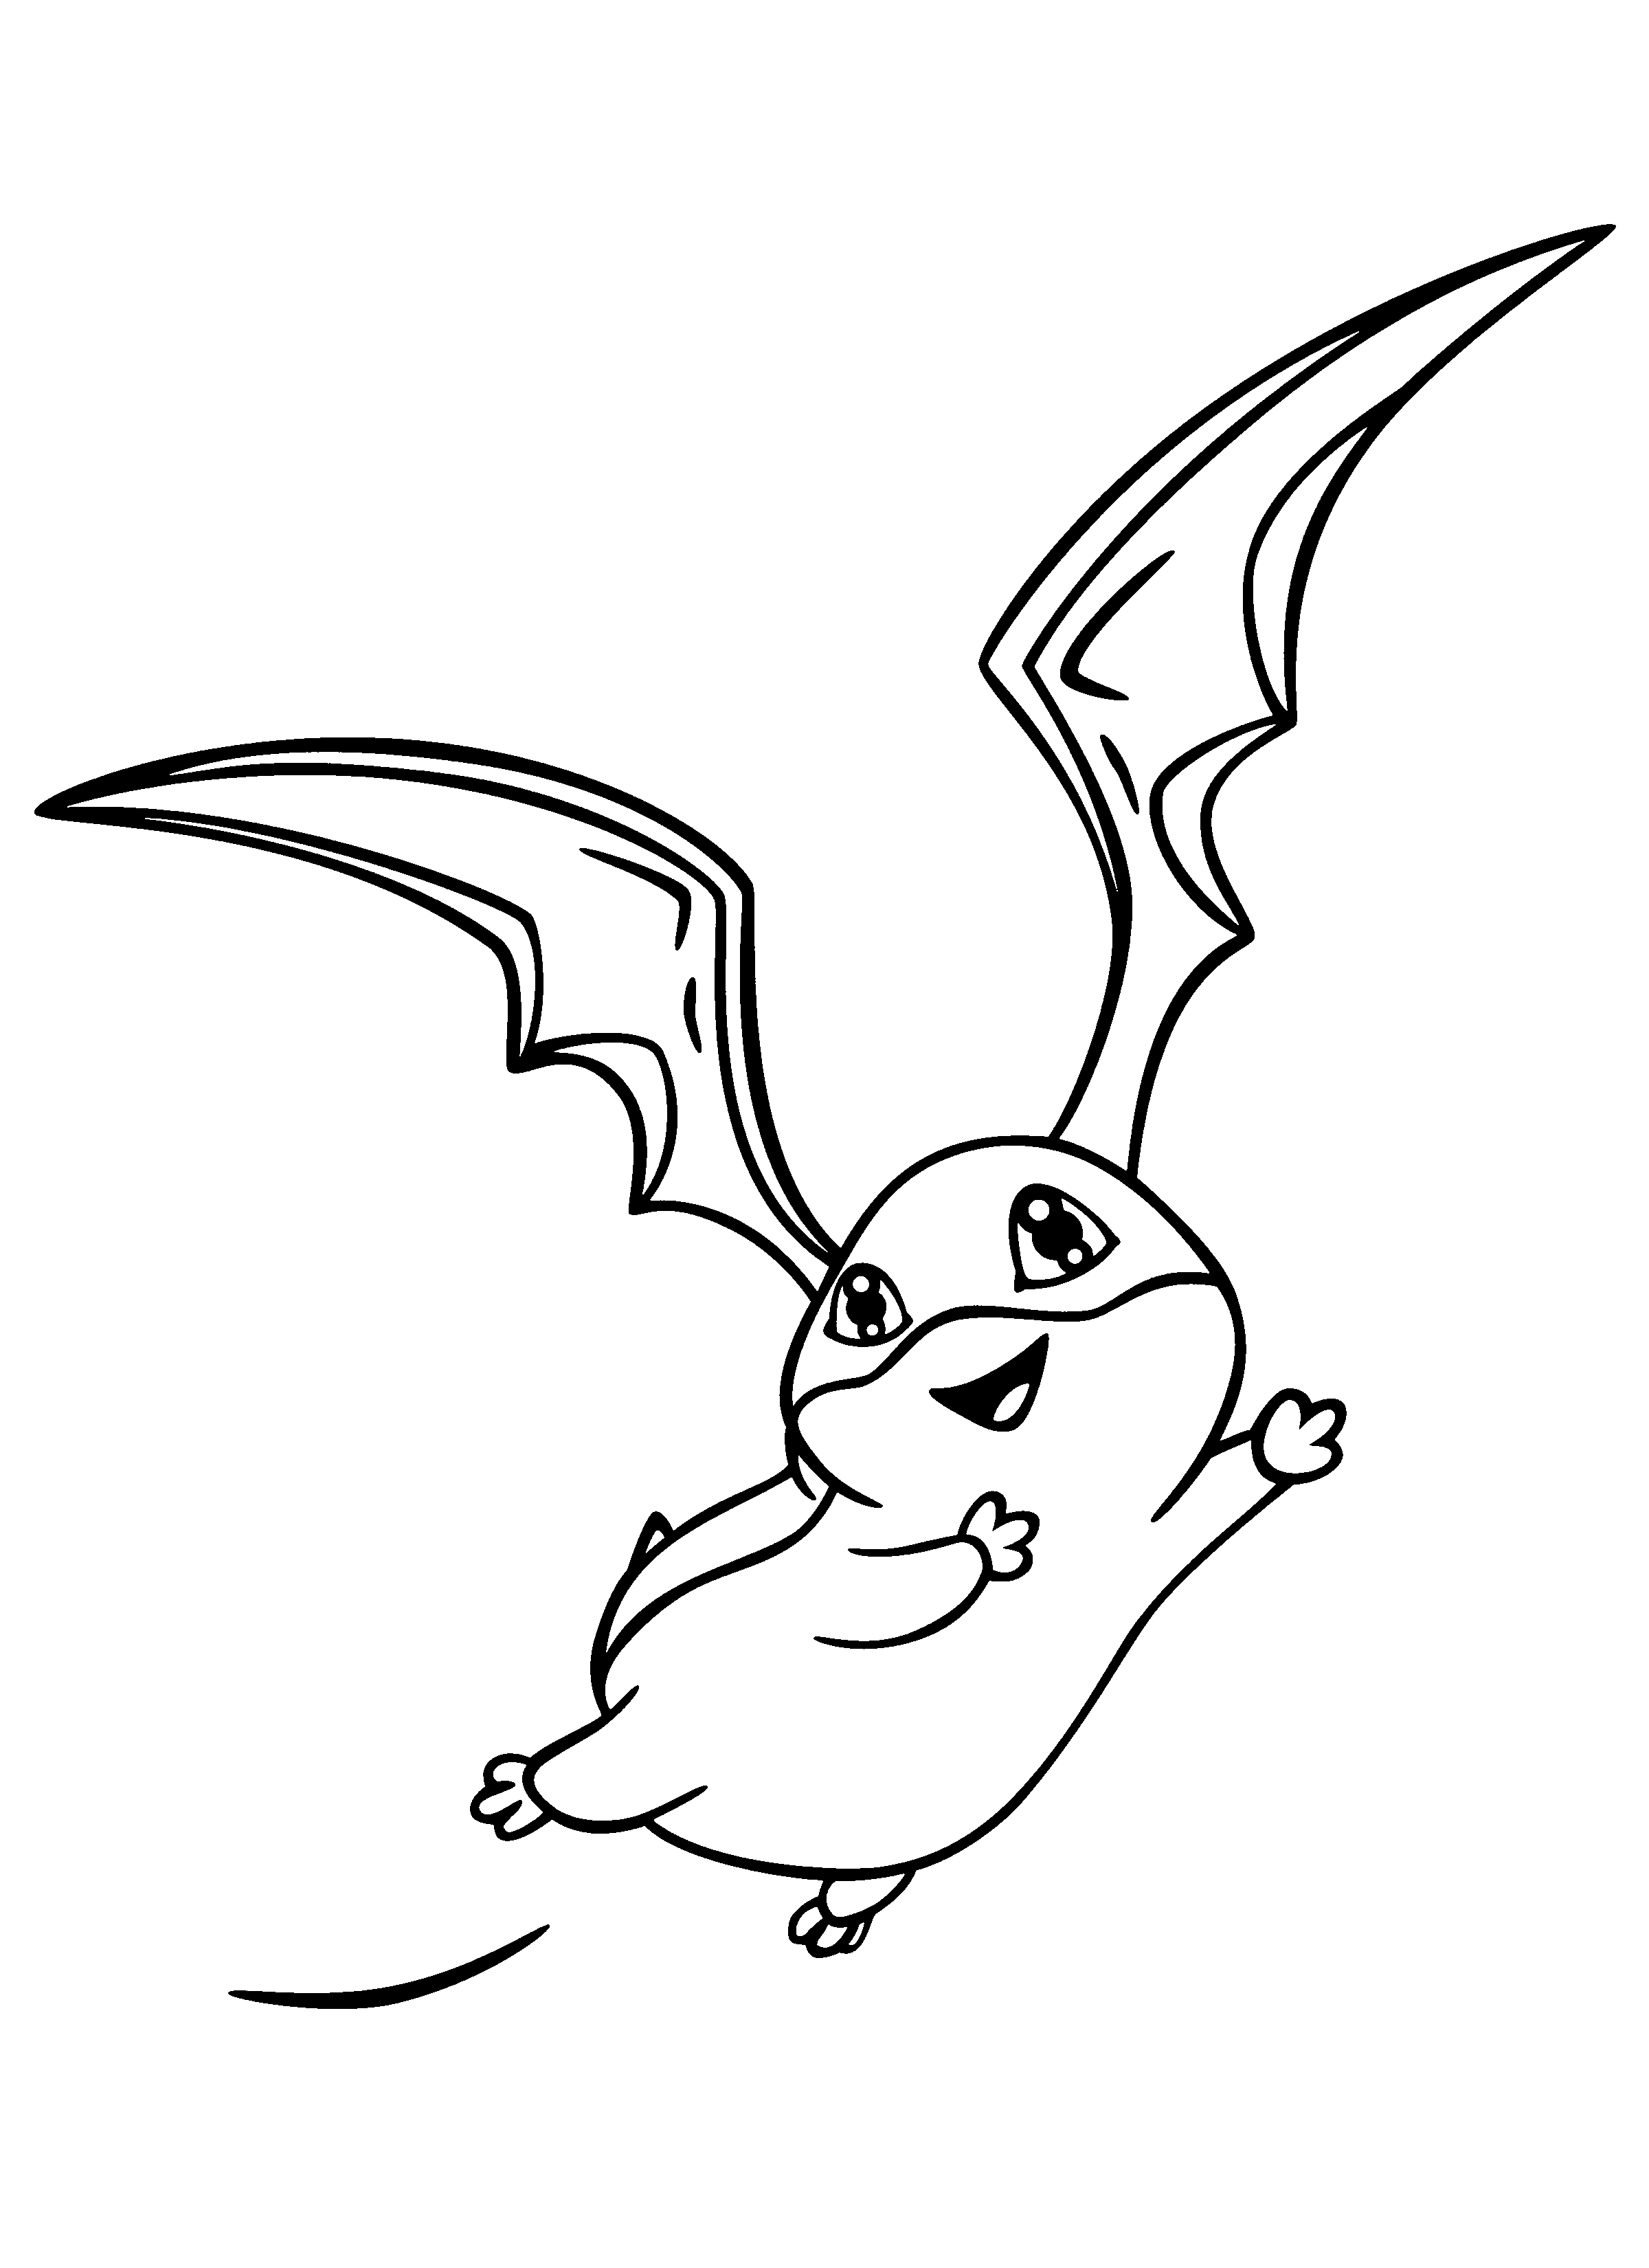 Free Digimon Coloring Page Pages 176 Printable